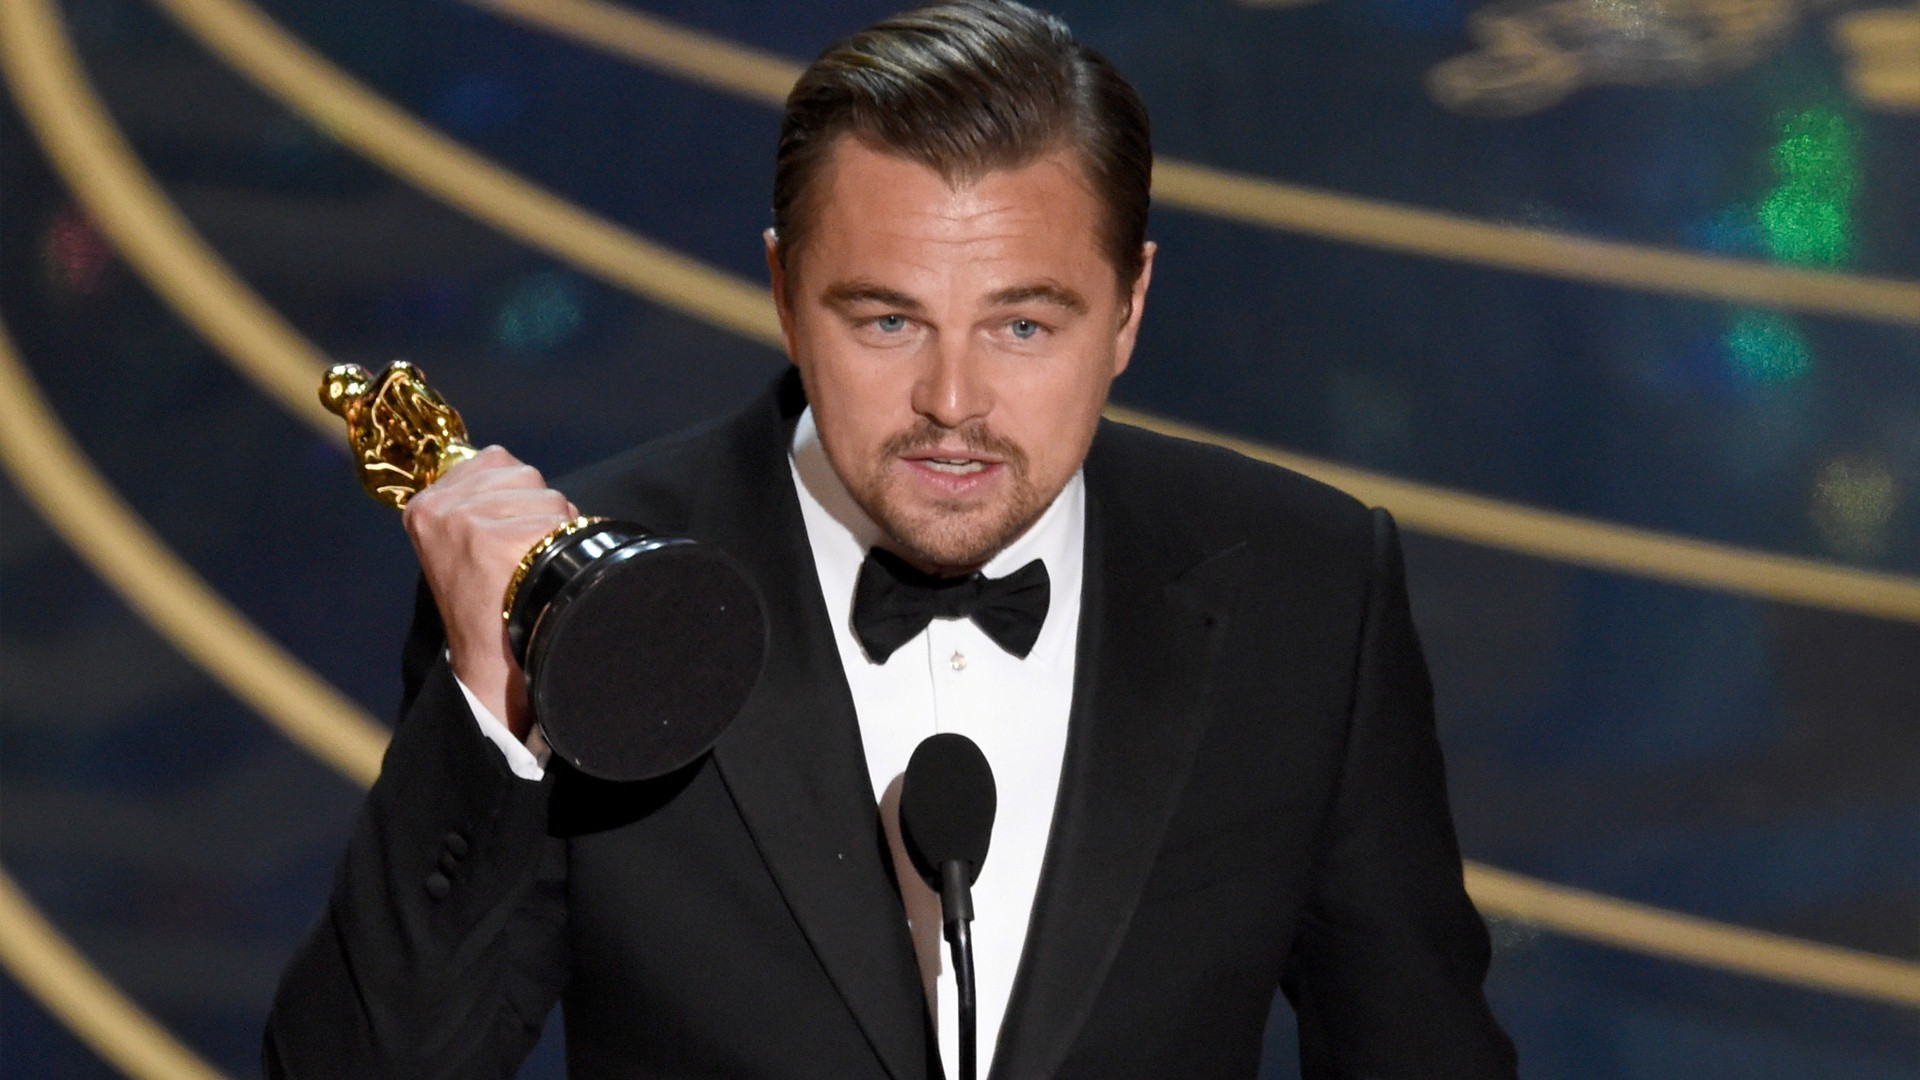 1920x1080 Leonardo DiCaprio with Wining Award Photo